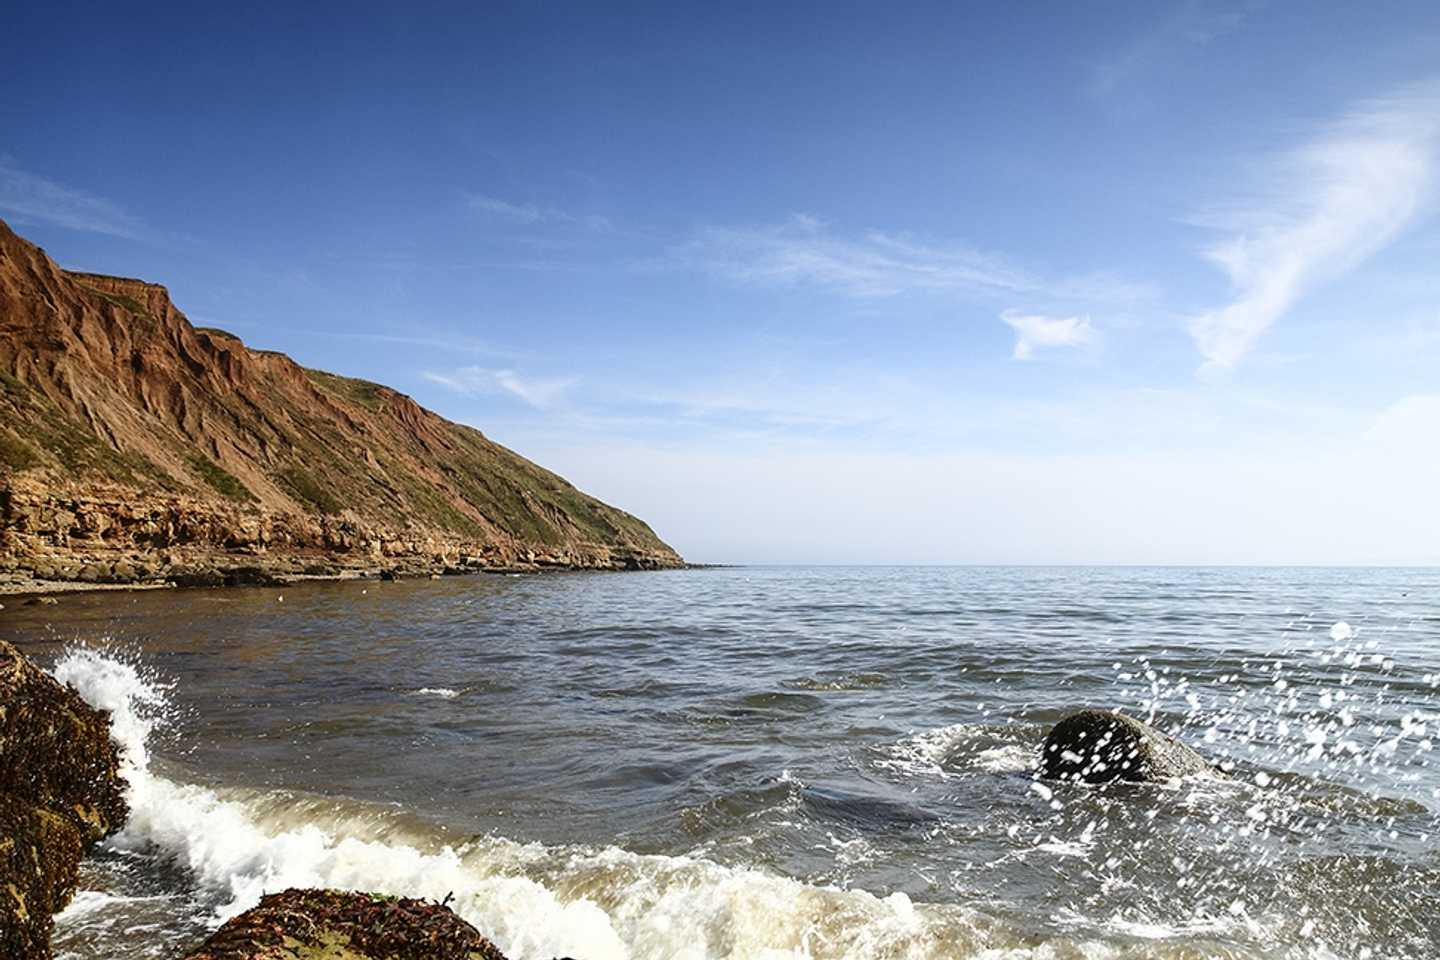 Panoramic view of Filey seafront